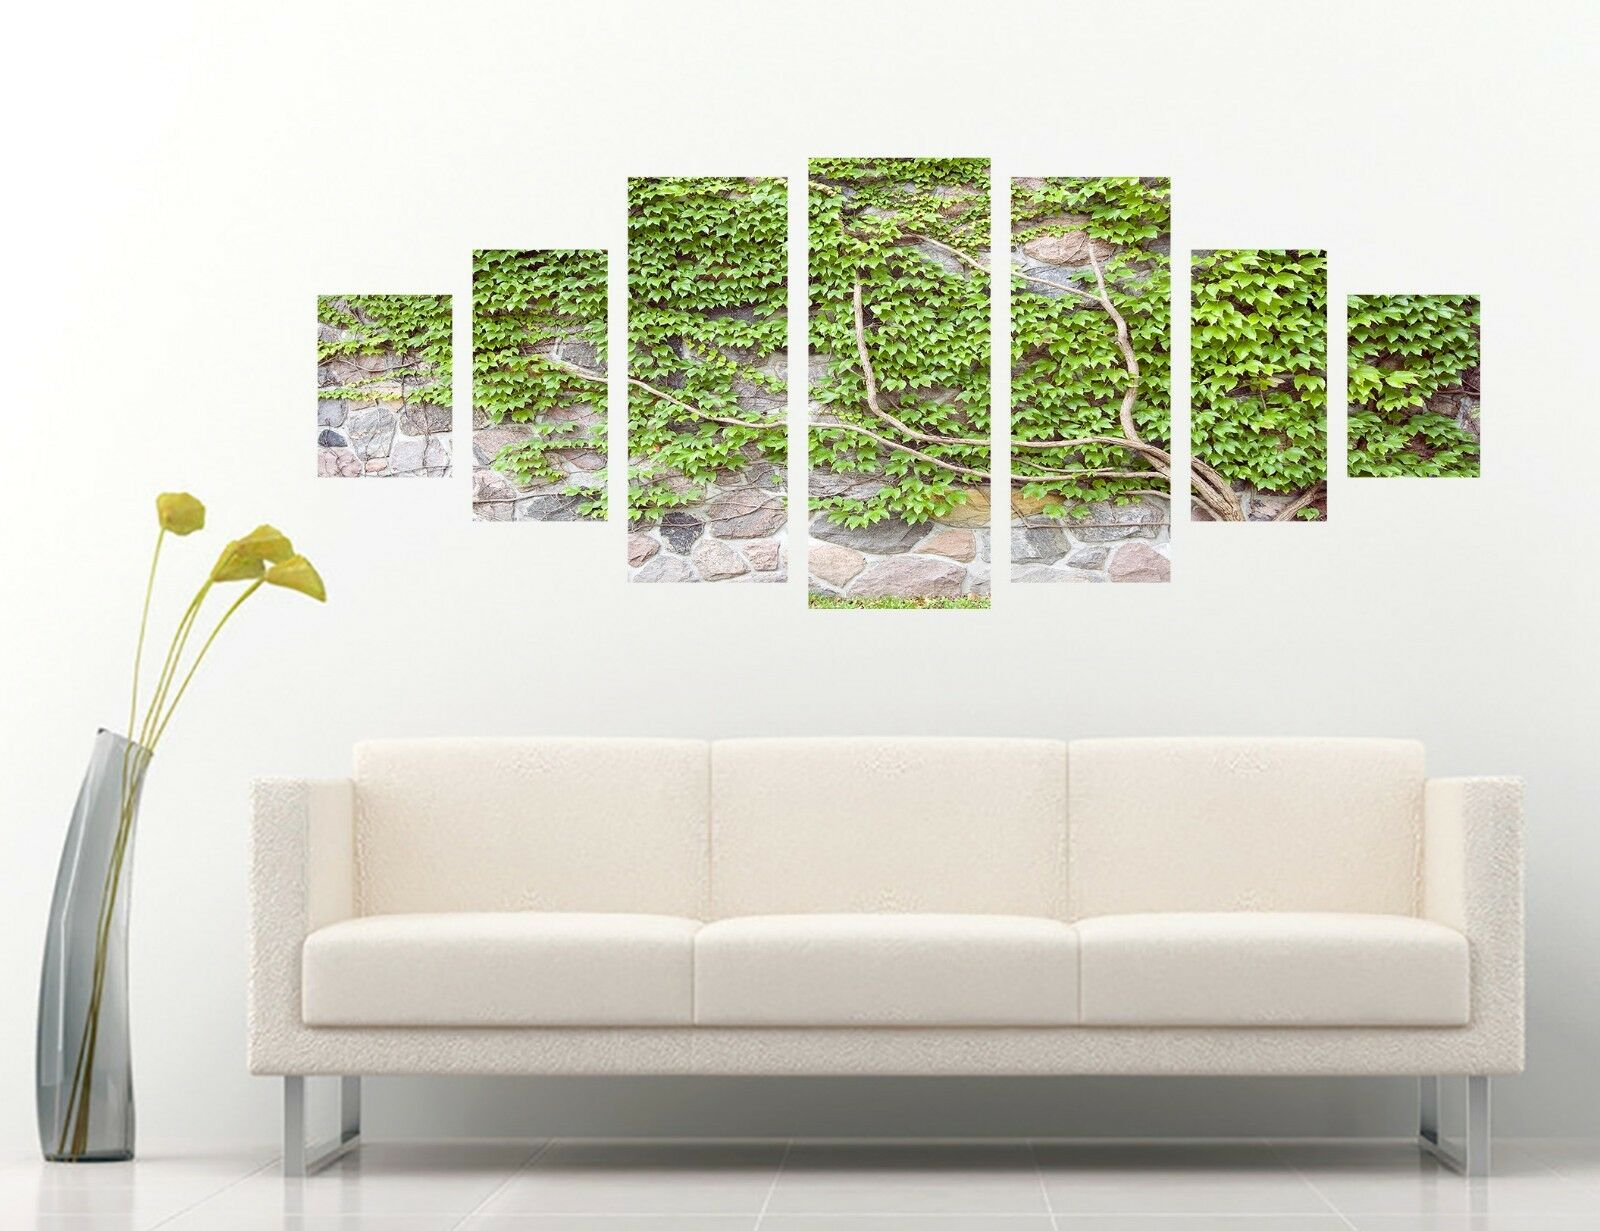 3D Plants Extend 74 Unframed Print Wall Paper Decal Wall Deco Indoor AJ Wall